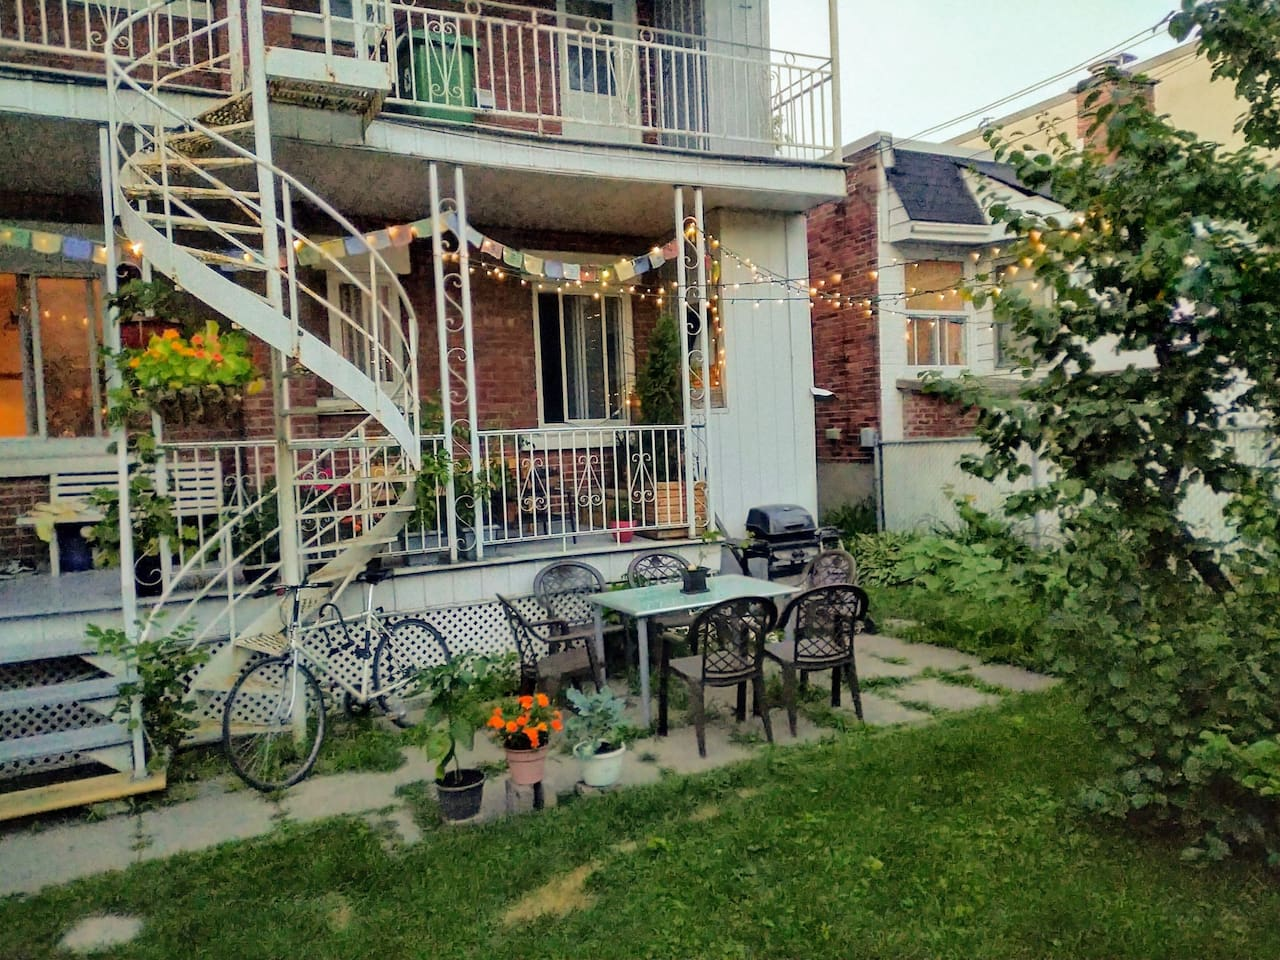 The backyard where you can have dinners, barbecues or just enjoy the sun and chill on the patio.